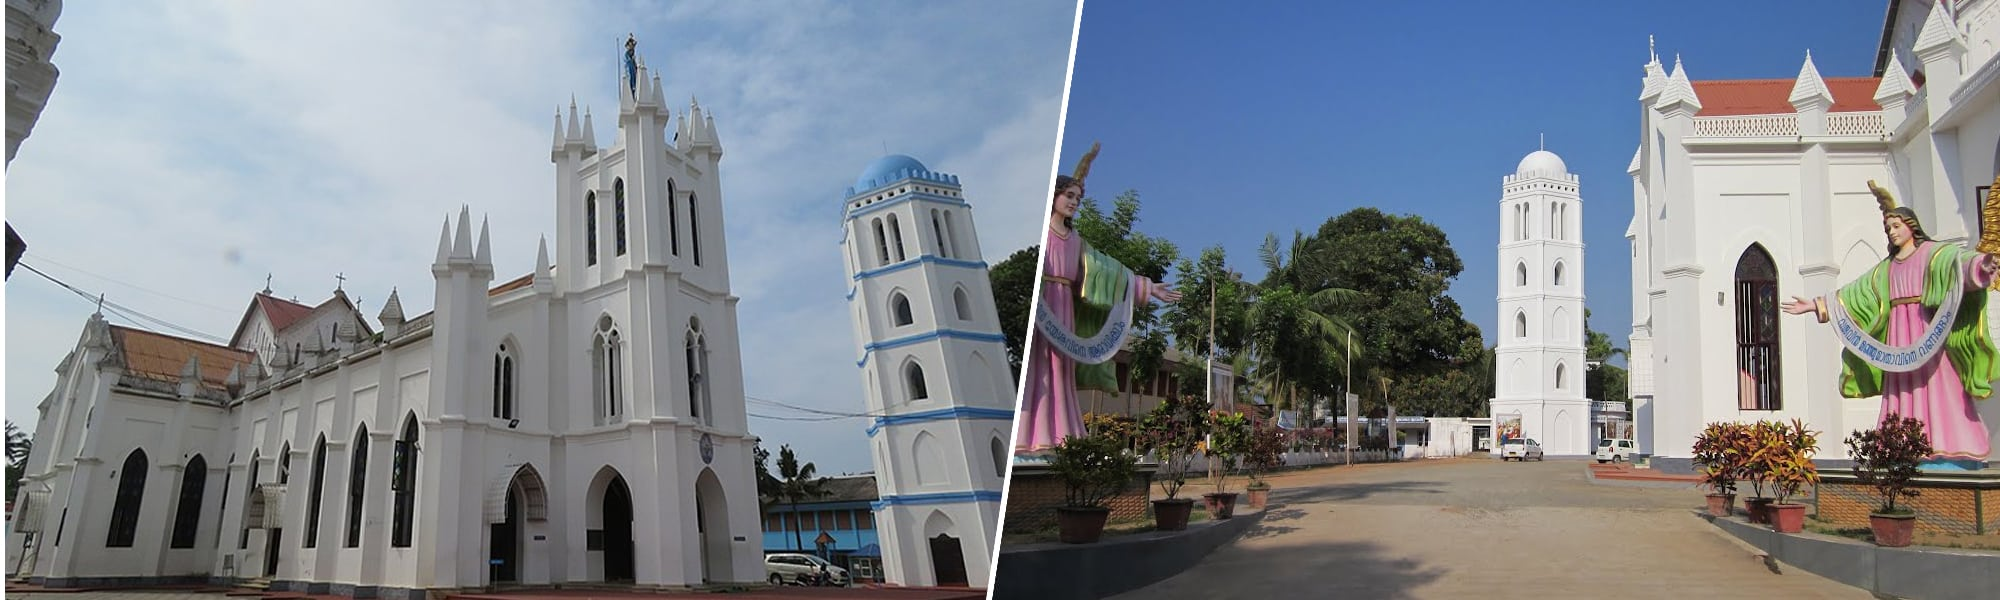 Basilica of Our Lady of Snows, Pallippuram